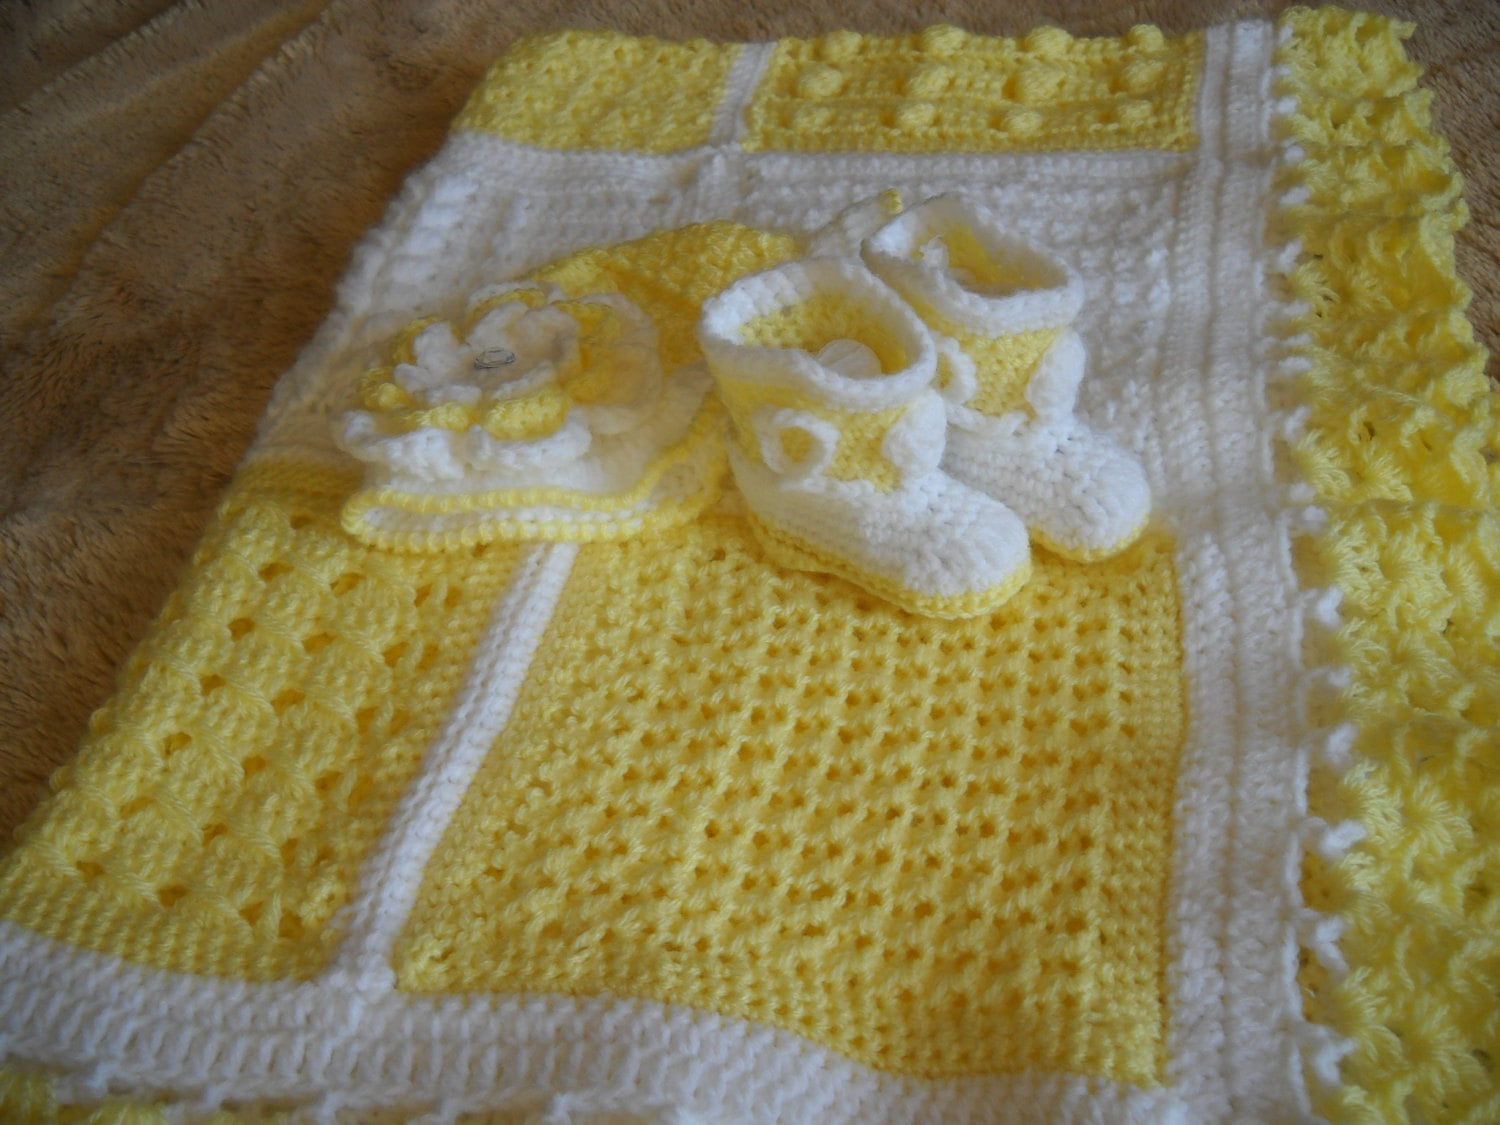 Yellow and White Crocheted Baby Gift Set, Blanket, Hat, and Cowboy(girl) Booties